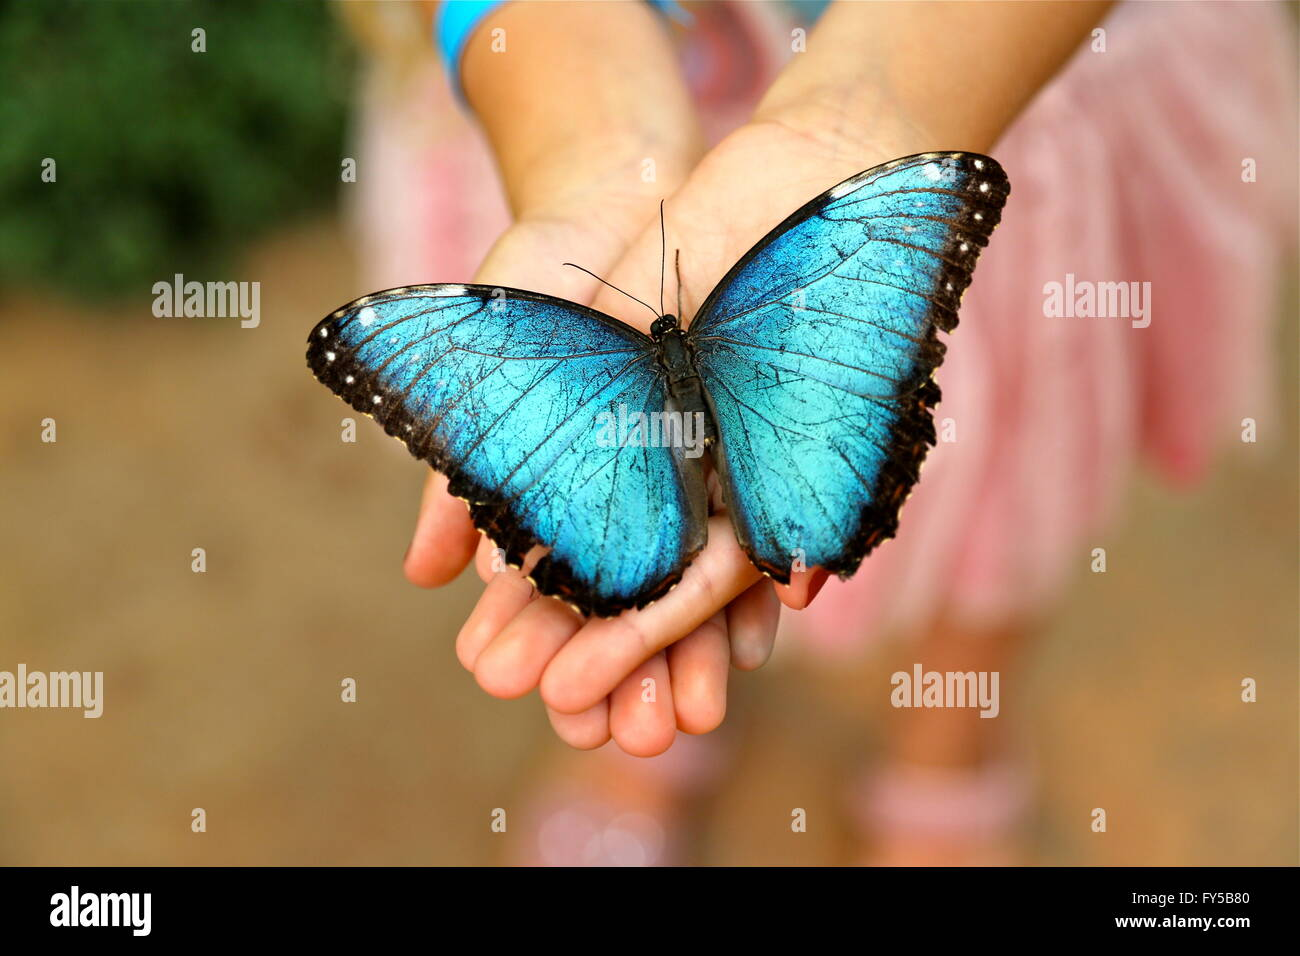 60 Butterfly Tattoos Feminine And Tribal Butterfly Butterfly in hand pictures